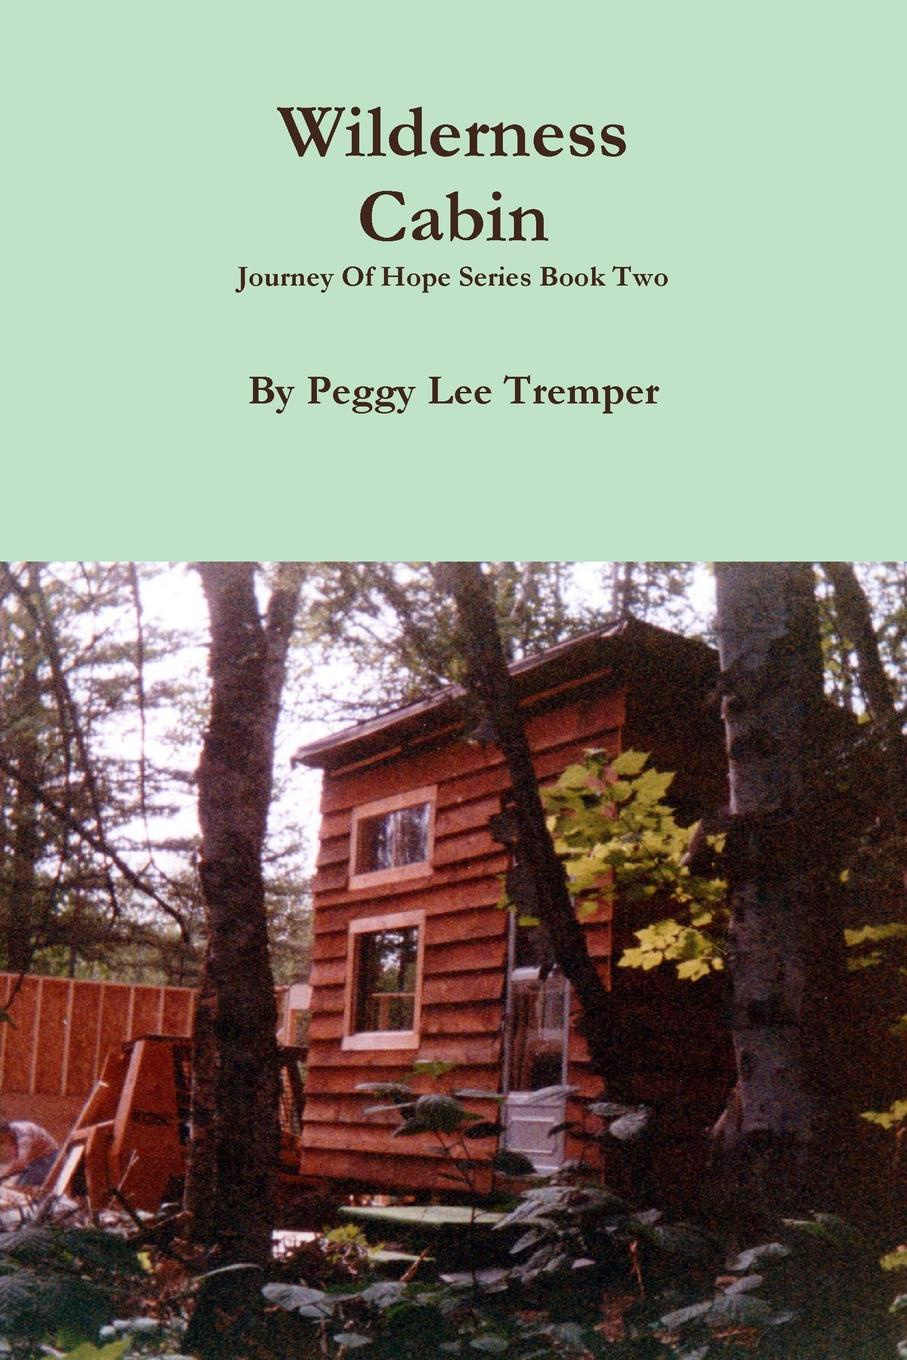 Peggy Lee Tremper Wilderness Cabin peggy lee tremper journey of hope